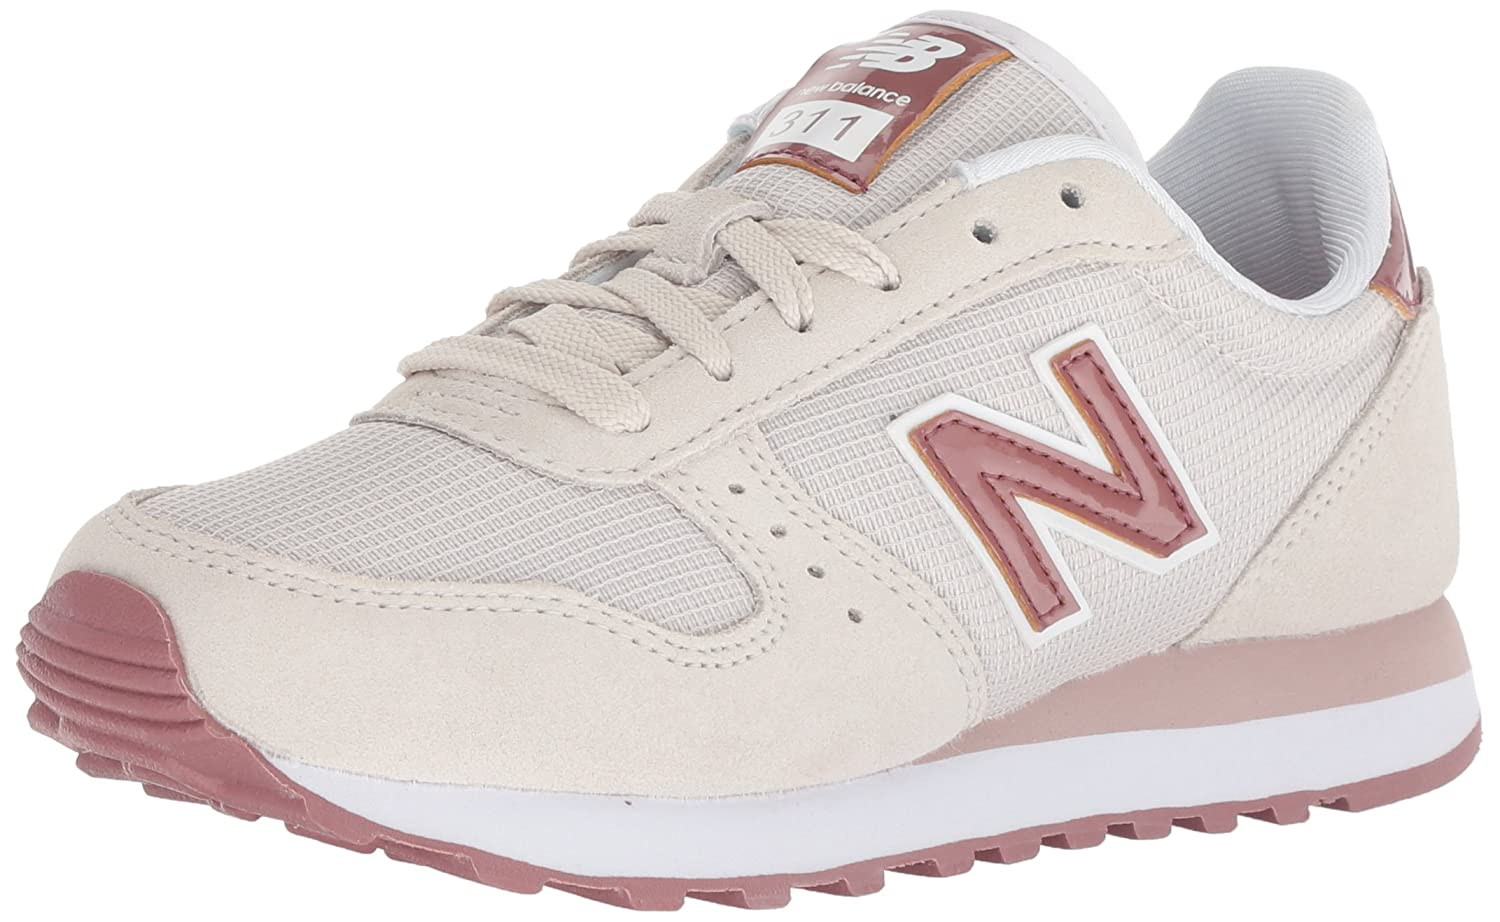 New Balance Women's 311v1 Sneaker B075R7PSW9 12 D US|Moonbeam